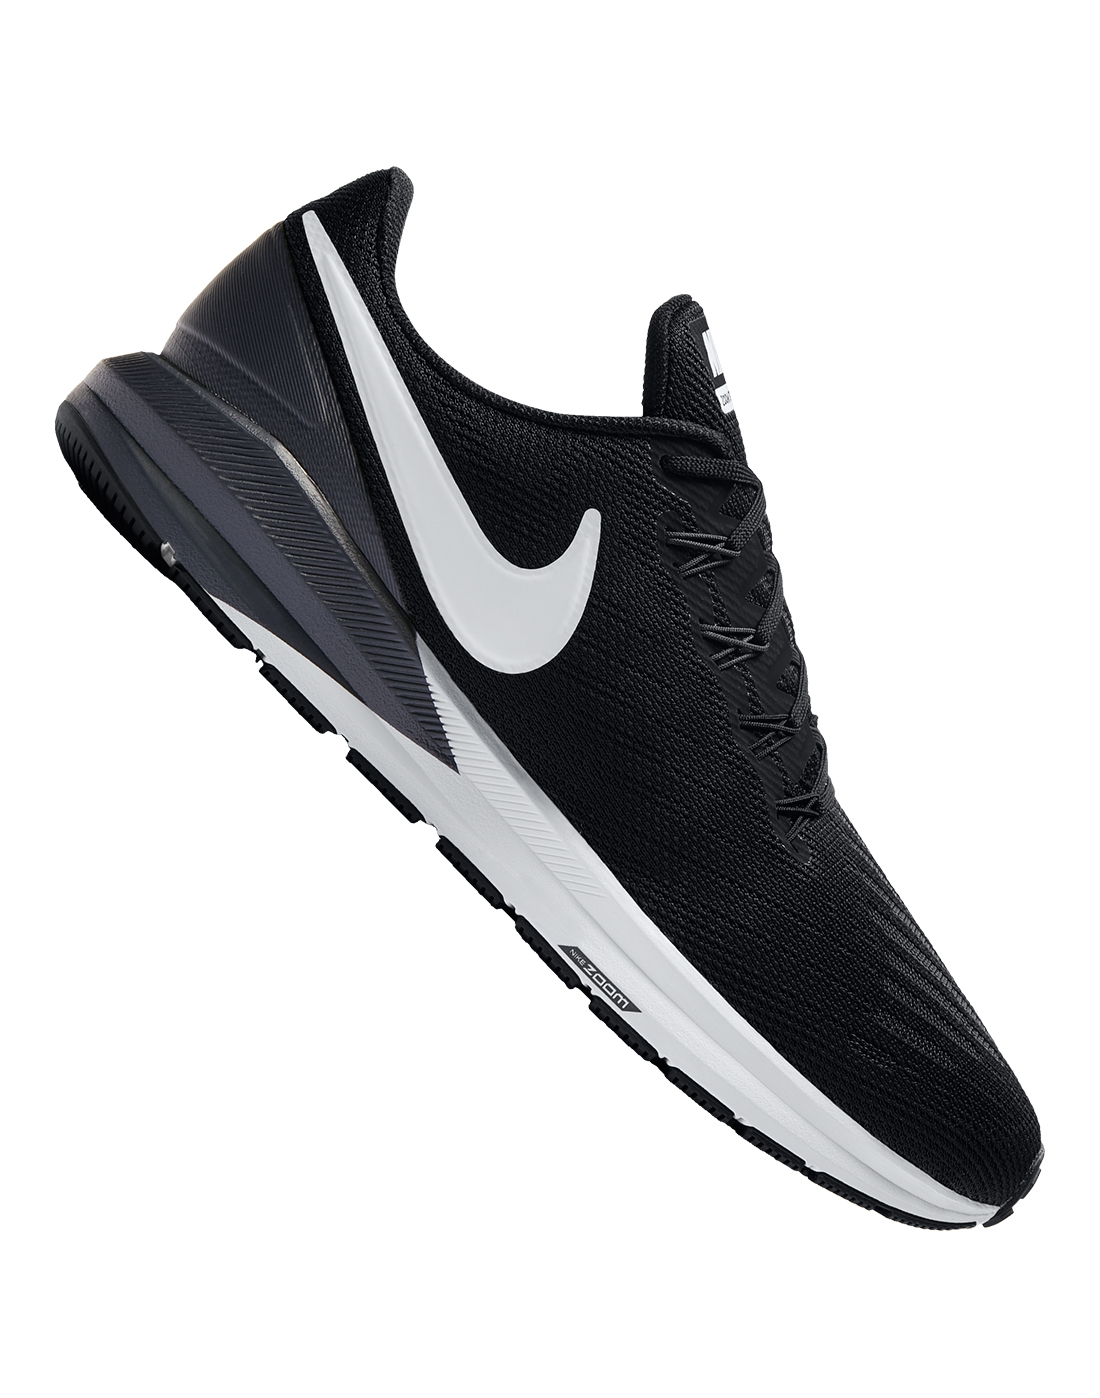 47a3b90c89c3 Men s Black Nike Air Zoom Structure 22